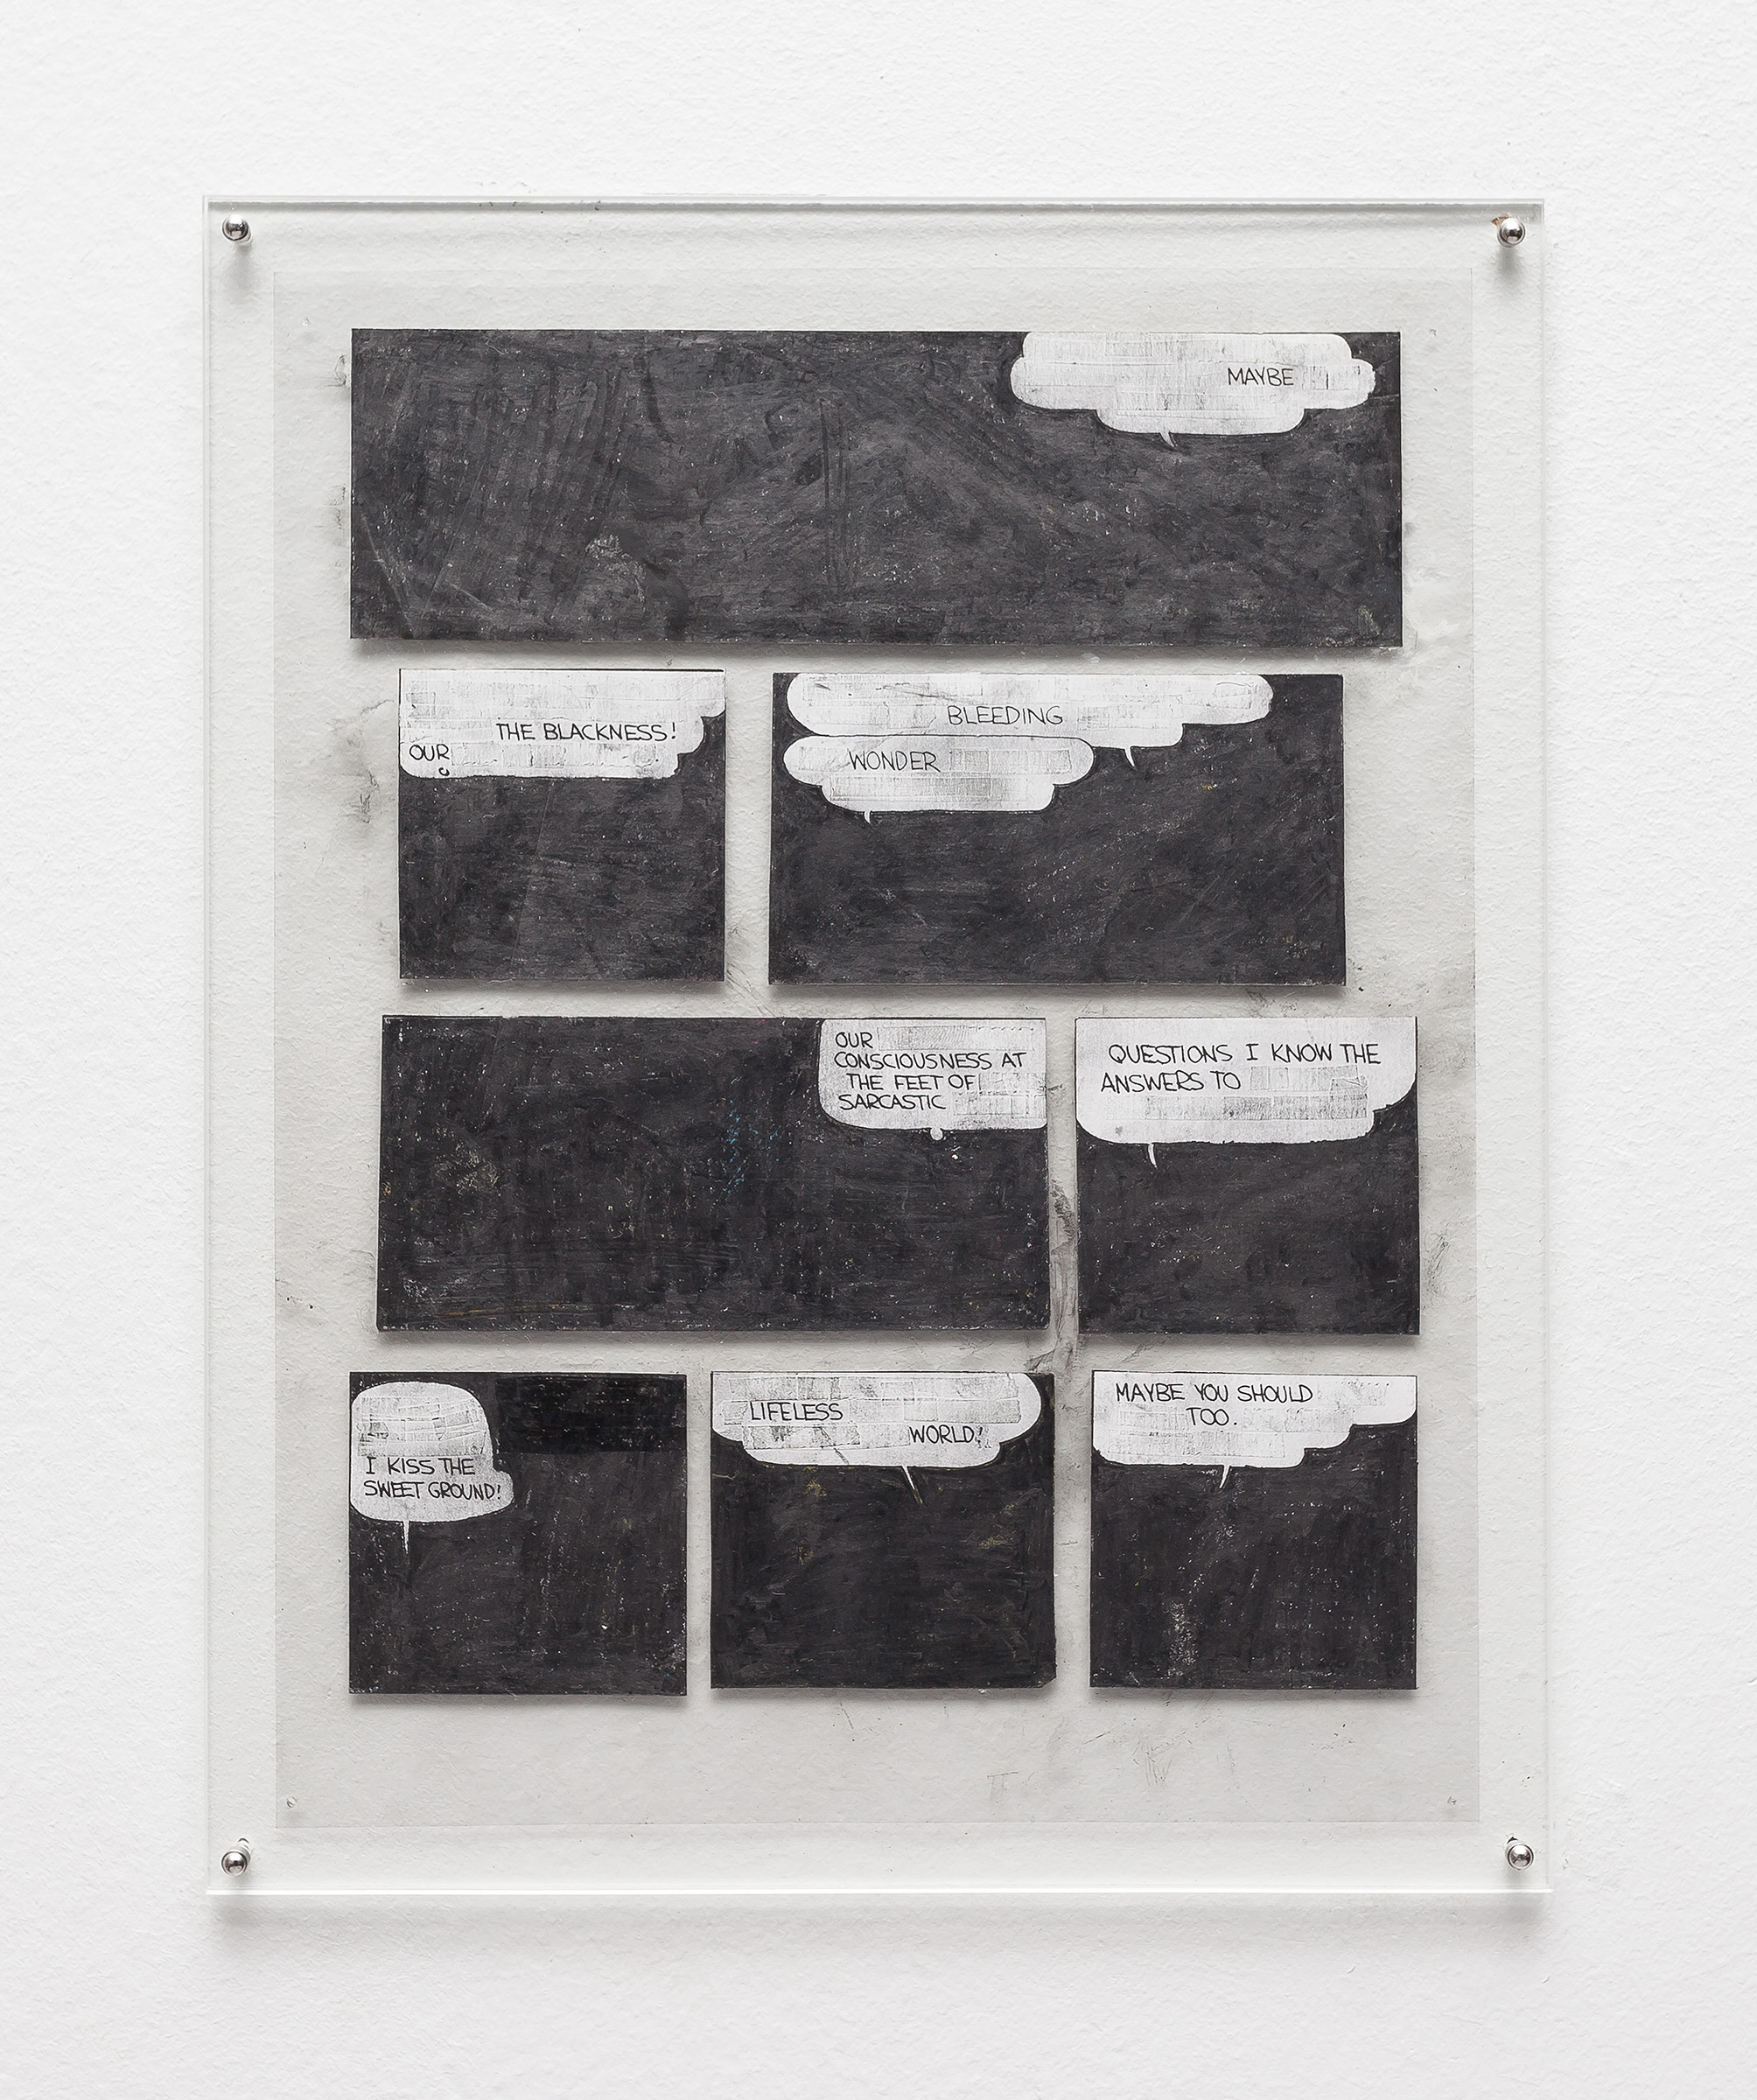 Tony Lewis, Maybe, 2016. Pencil, graphite powder, and correction fluid on paper and transparency. Courtesy of the Artist.